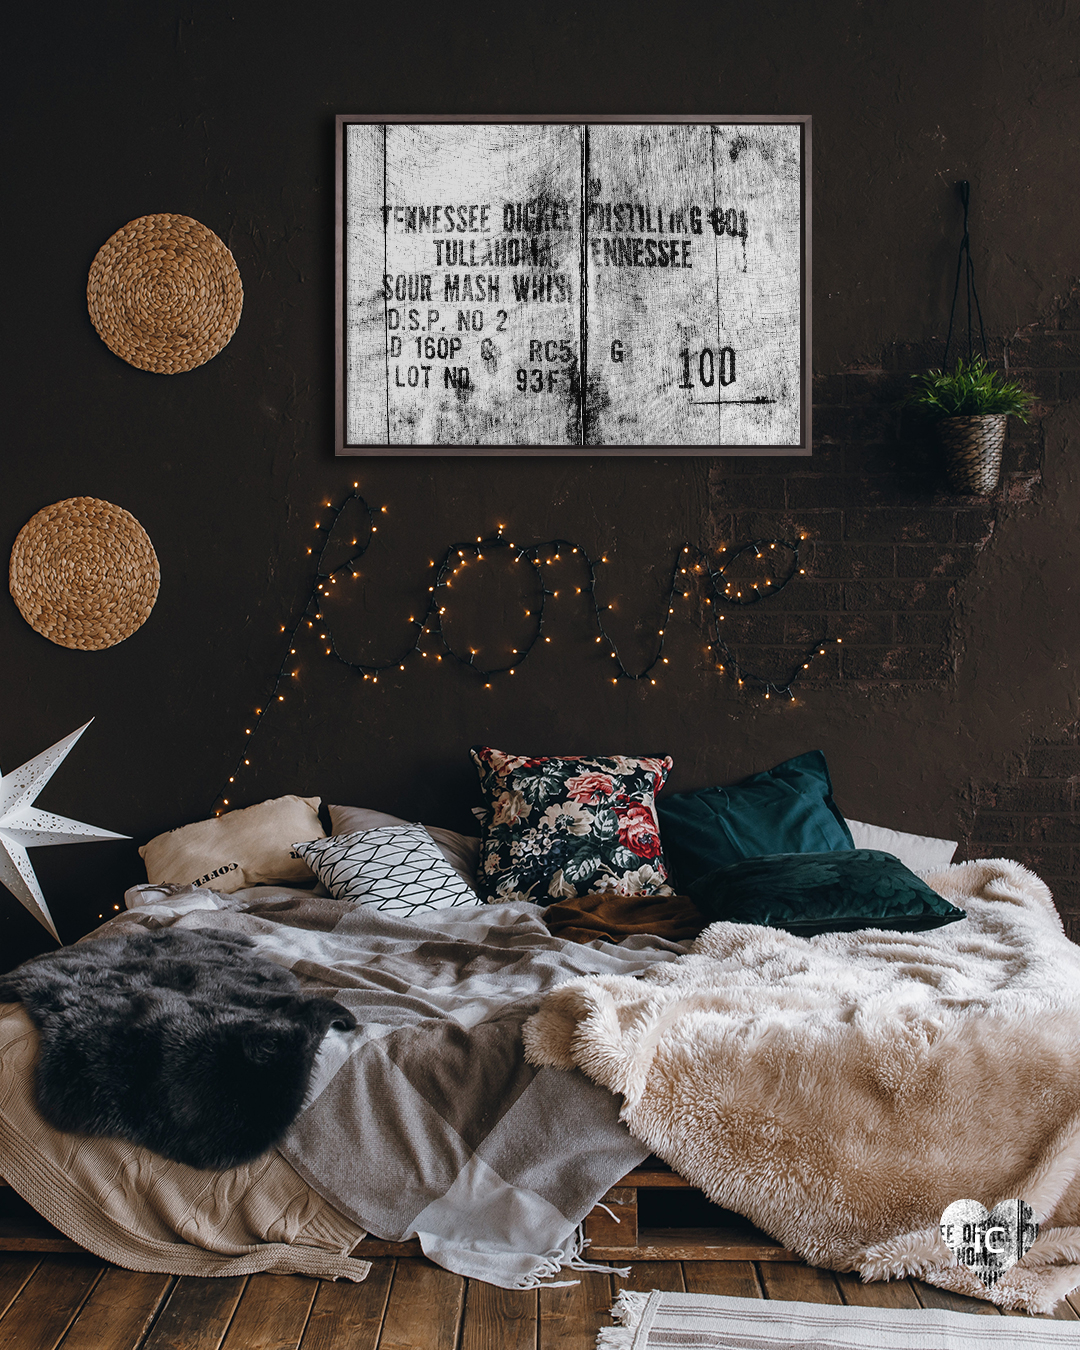 Rustic wood engraving-inspired graphic of Tennessee whiskey distilling label framed on a brown wall in a bedroom with string lights and a potted plant